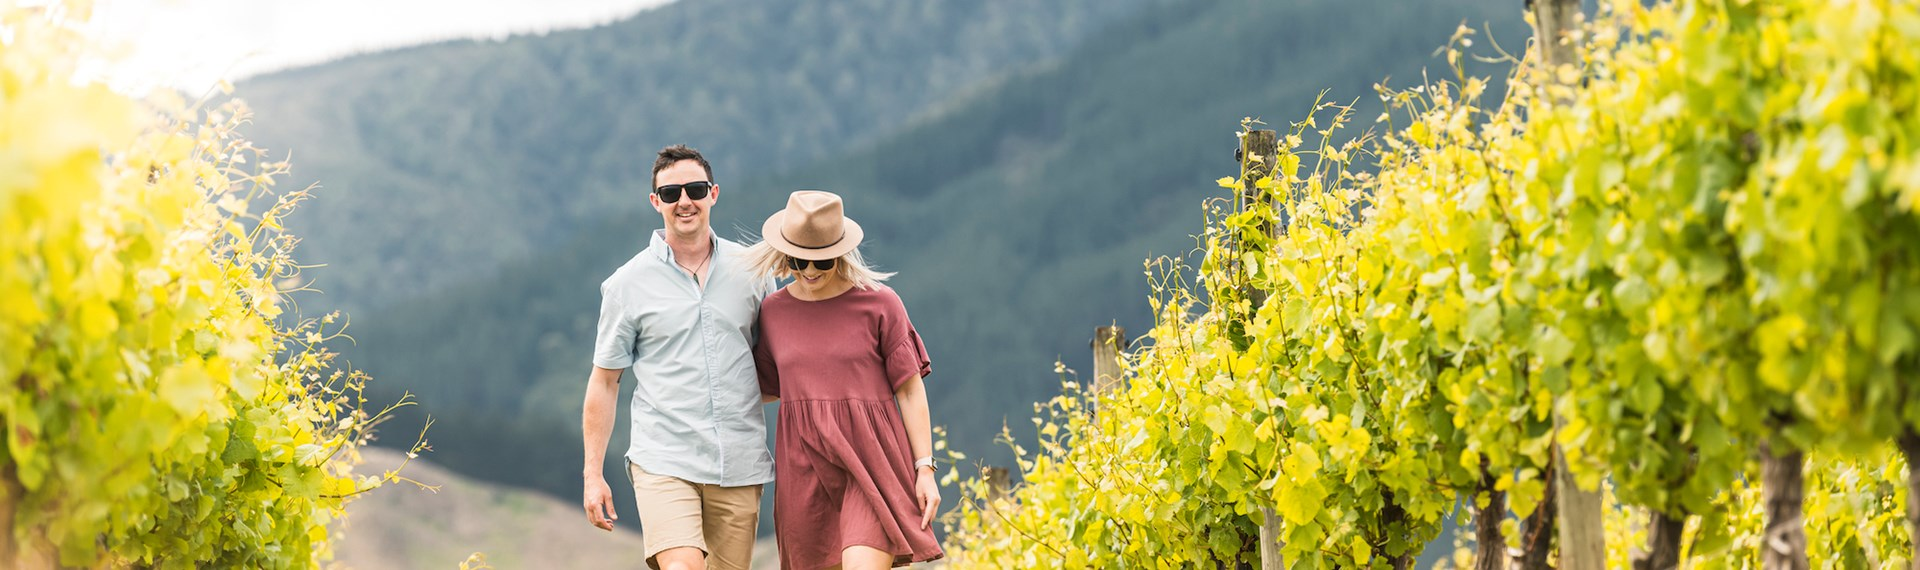 Couple arm in arm walking in a vineyard between rows of grapes as part of wine tours in Marlborough, at the top of New Zealand's South Island